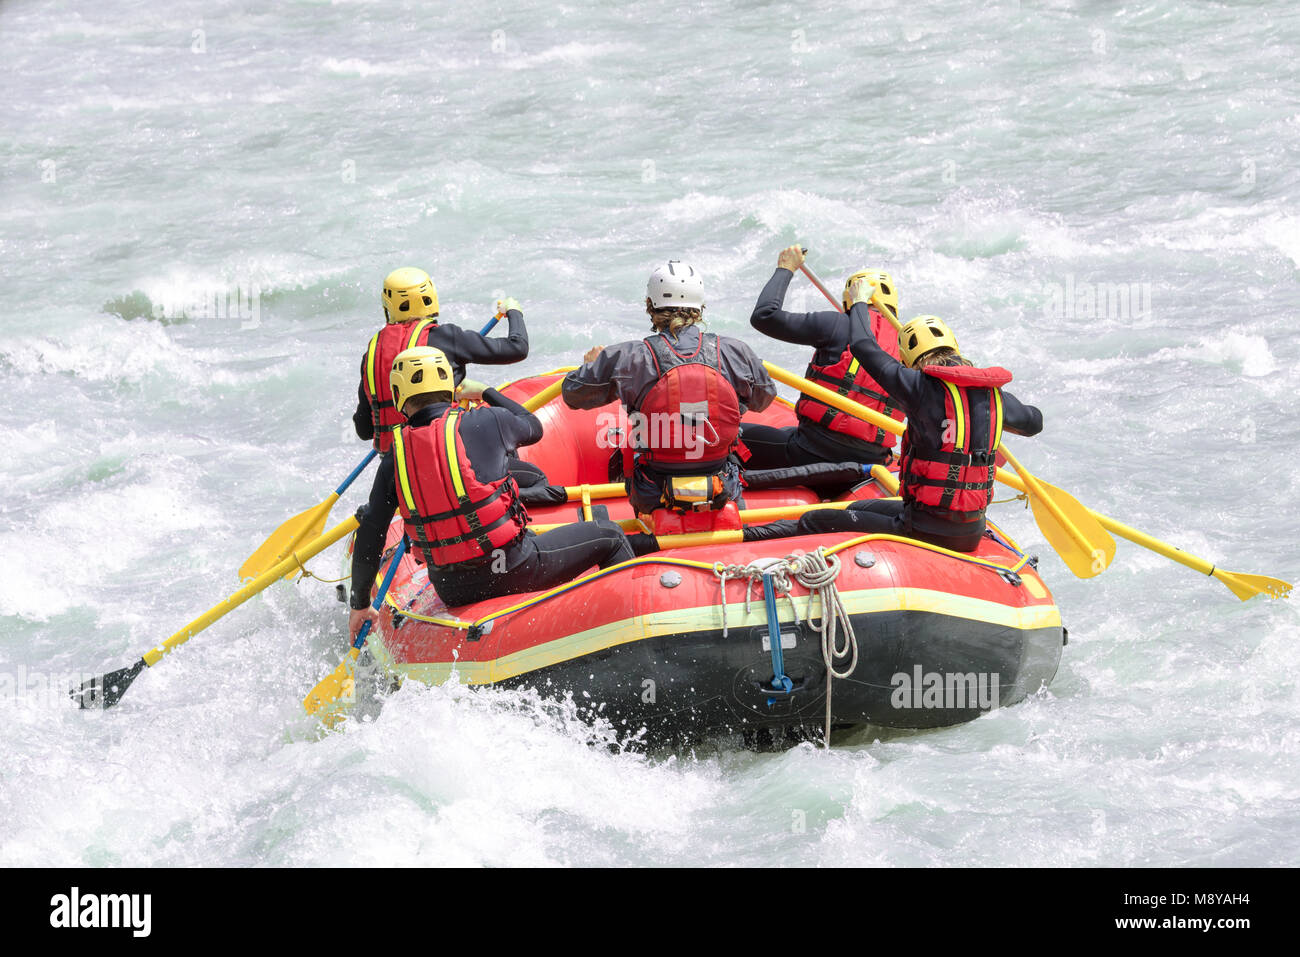 Group of people rafting on white water, active vacations, team concept - Stock Image